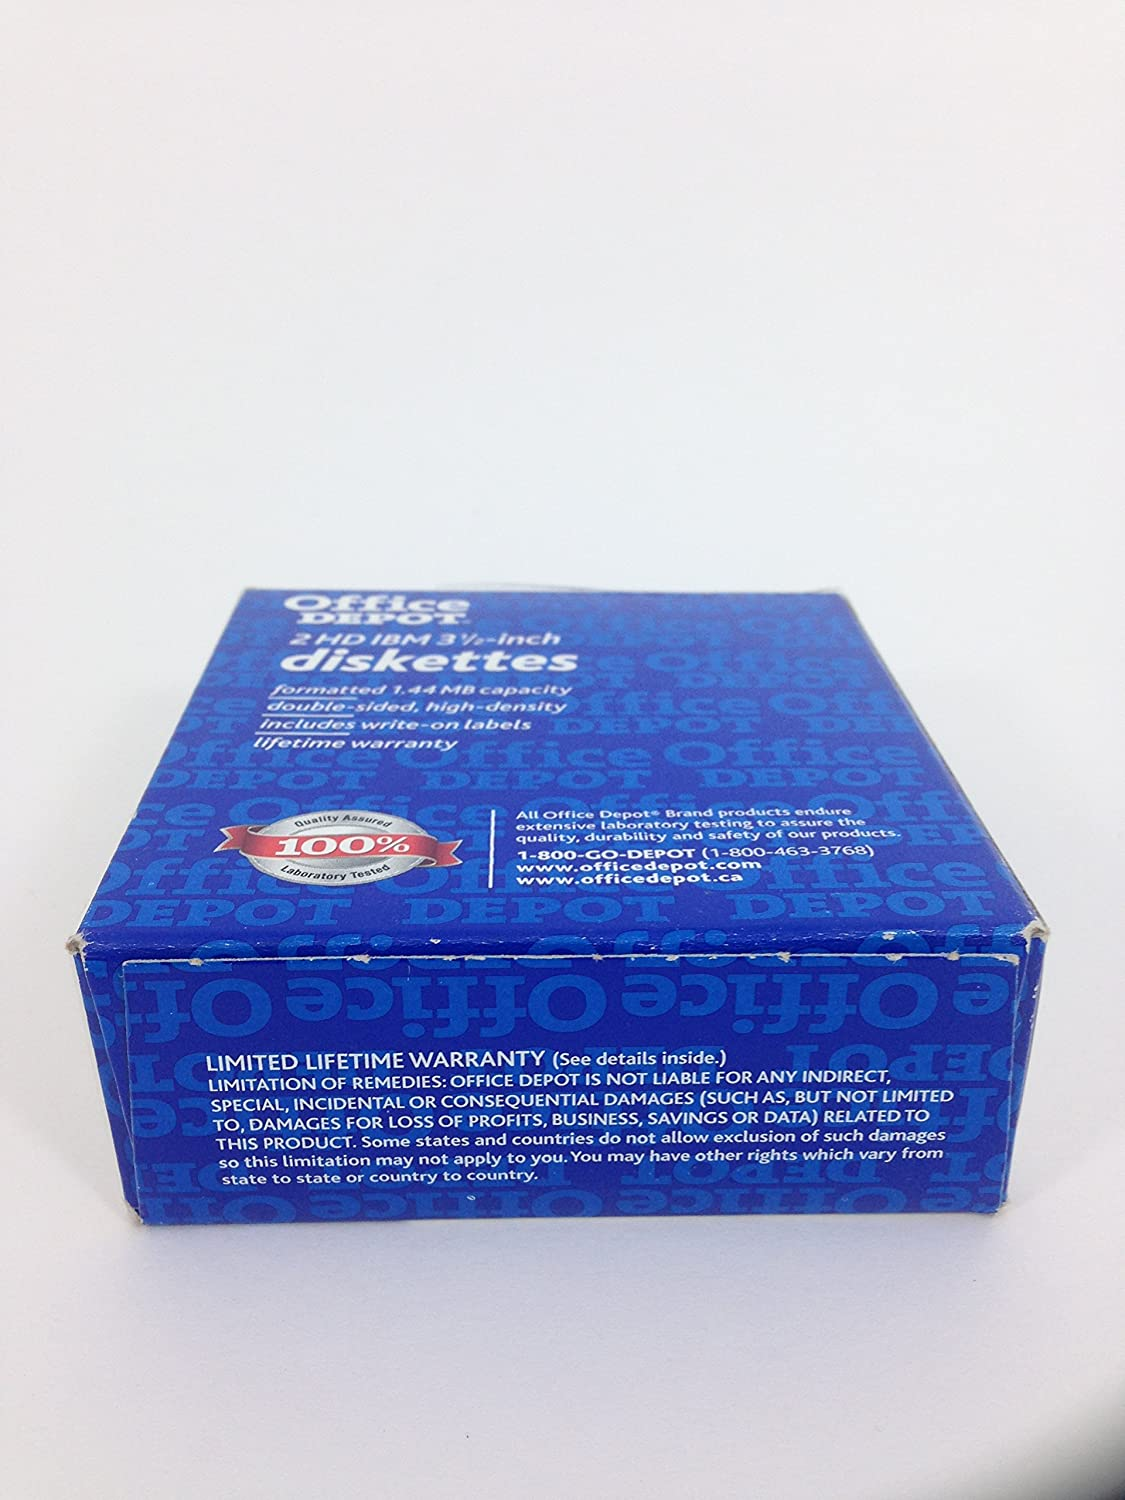 Office depot services register new product - Amazon Com Office Depot 2 Hd Ibm 3 1 2 Inch Diskettes Box Of 10 Home Audio Theater